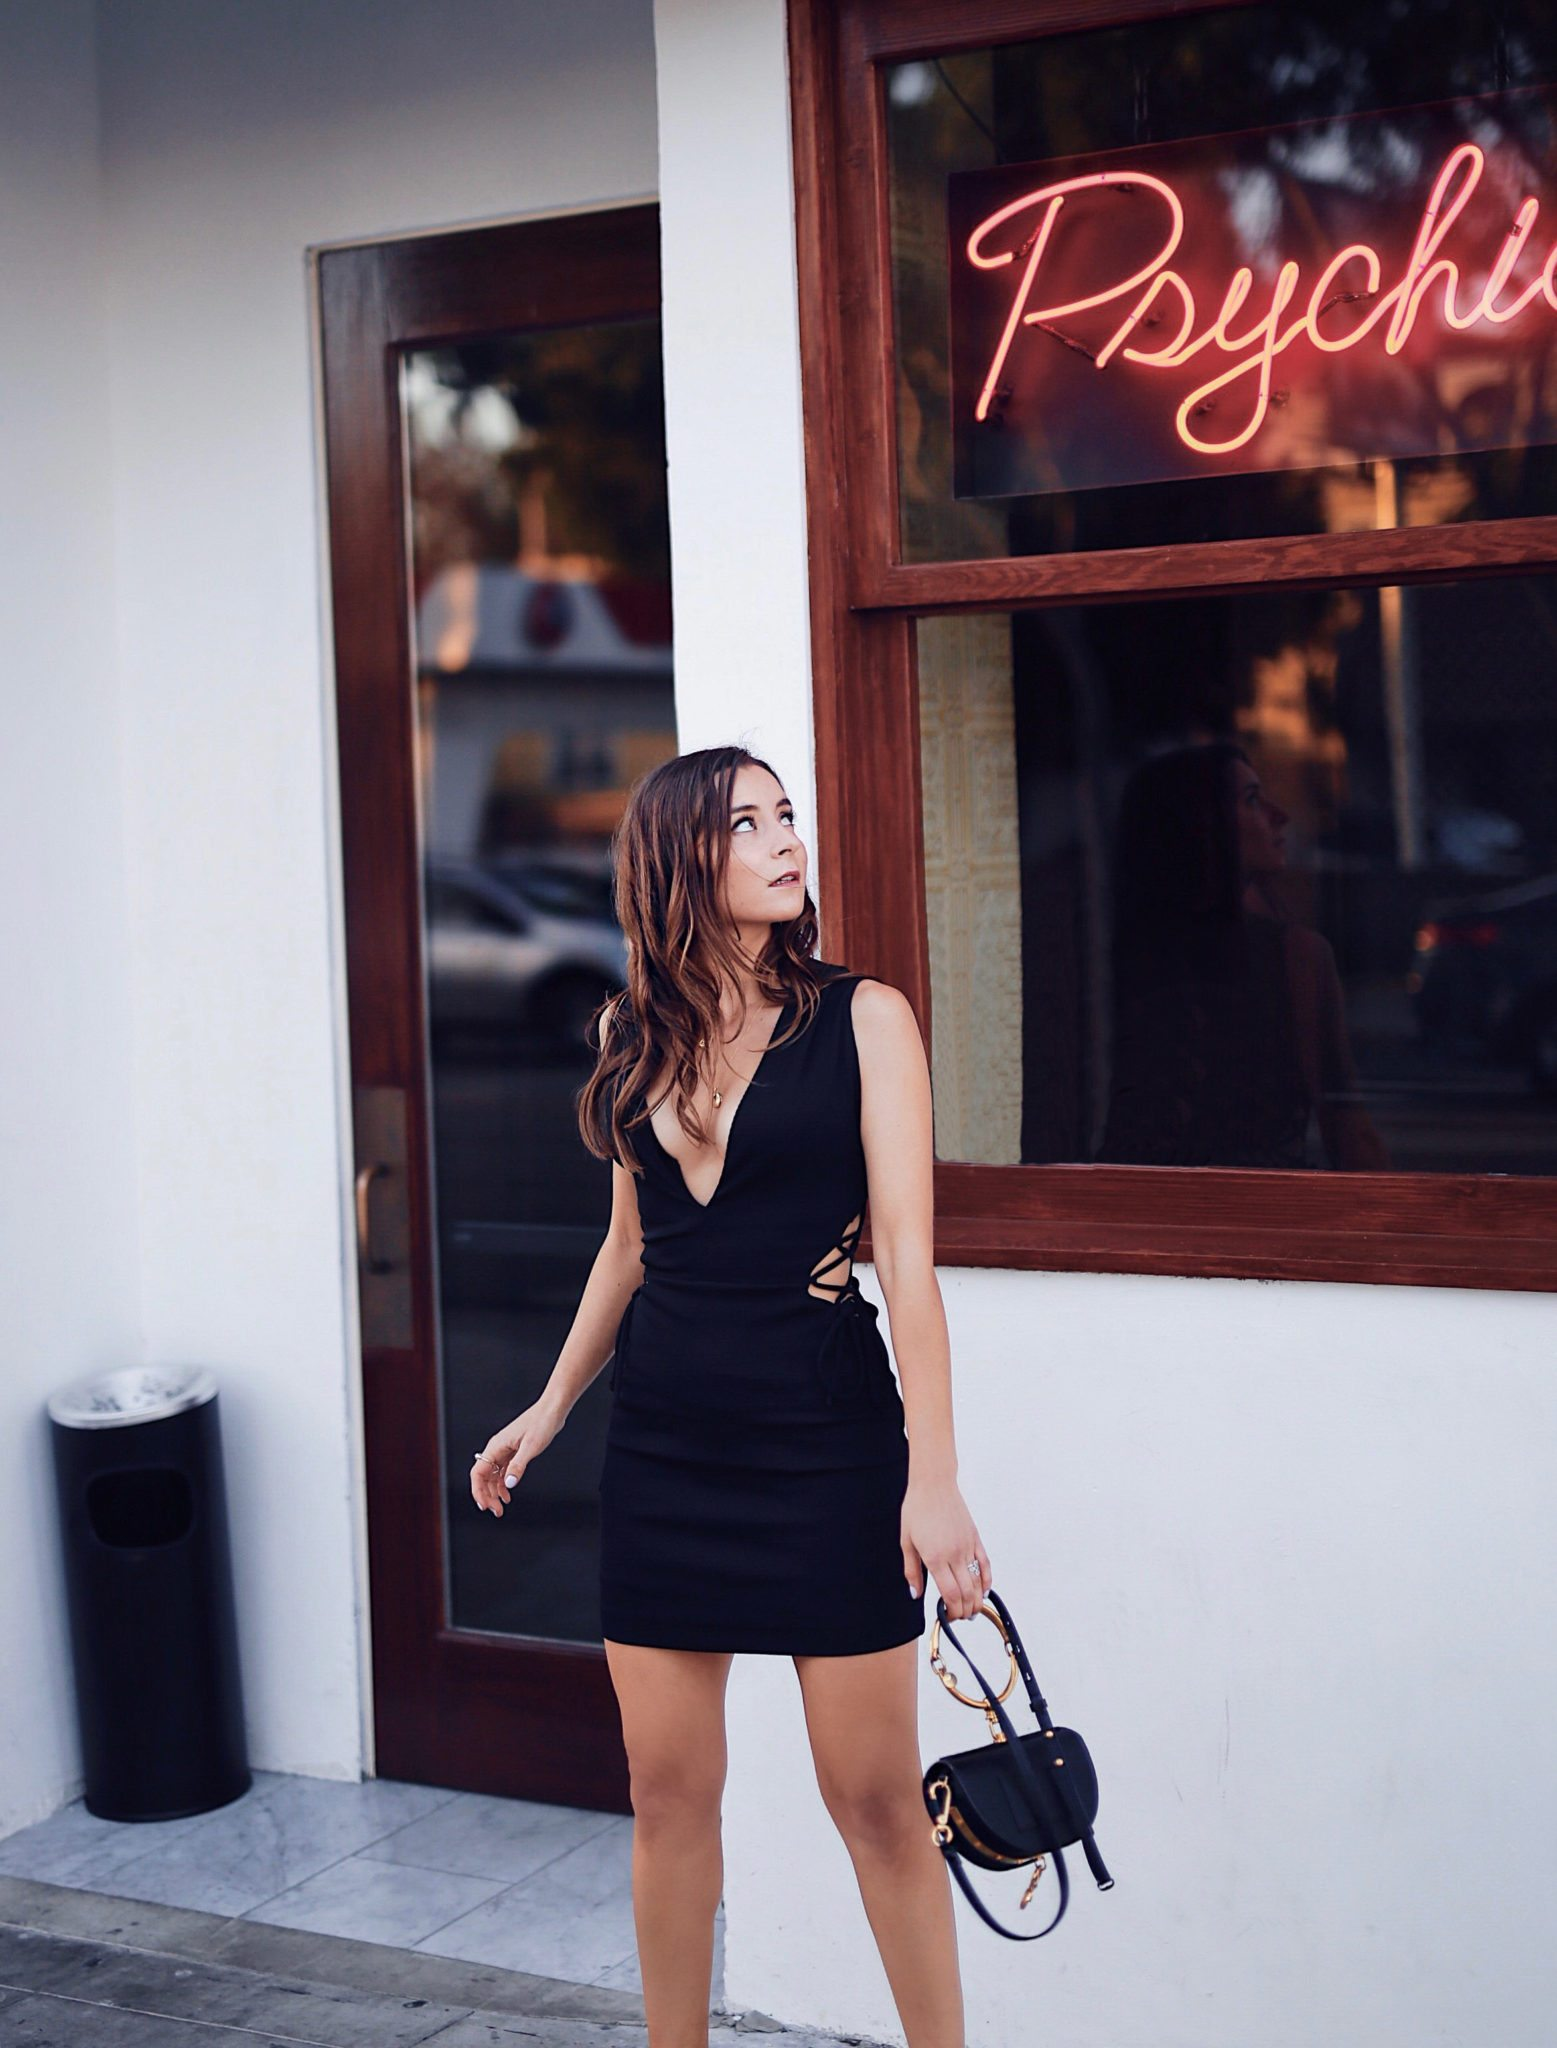 Fashion Diaries: Revolve Around The World Parties in Los Angeles - NBD Magnolia Lace up Mini Dress in Black worn by Fashion Blogger Julia Comil. More on Houseofcomil.com. Pin to read it later. Location Delilah club West Hollywood Los Angeles - Clubbing outfit